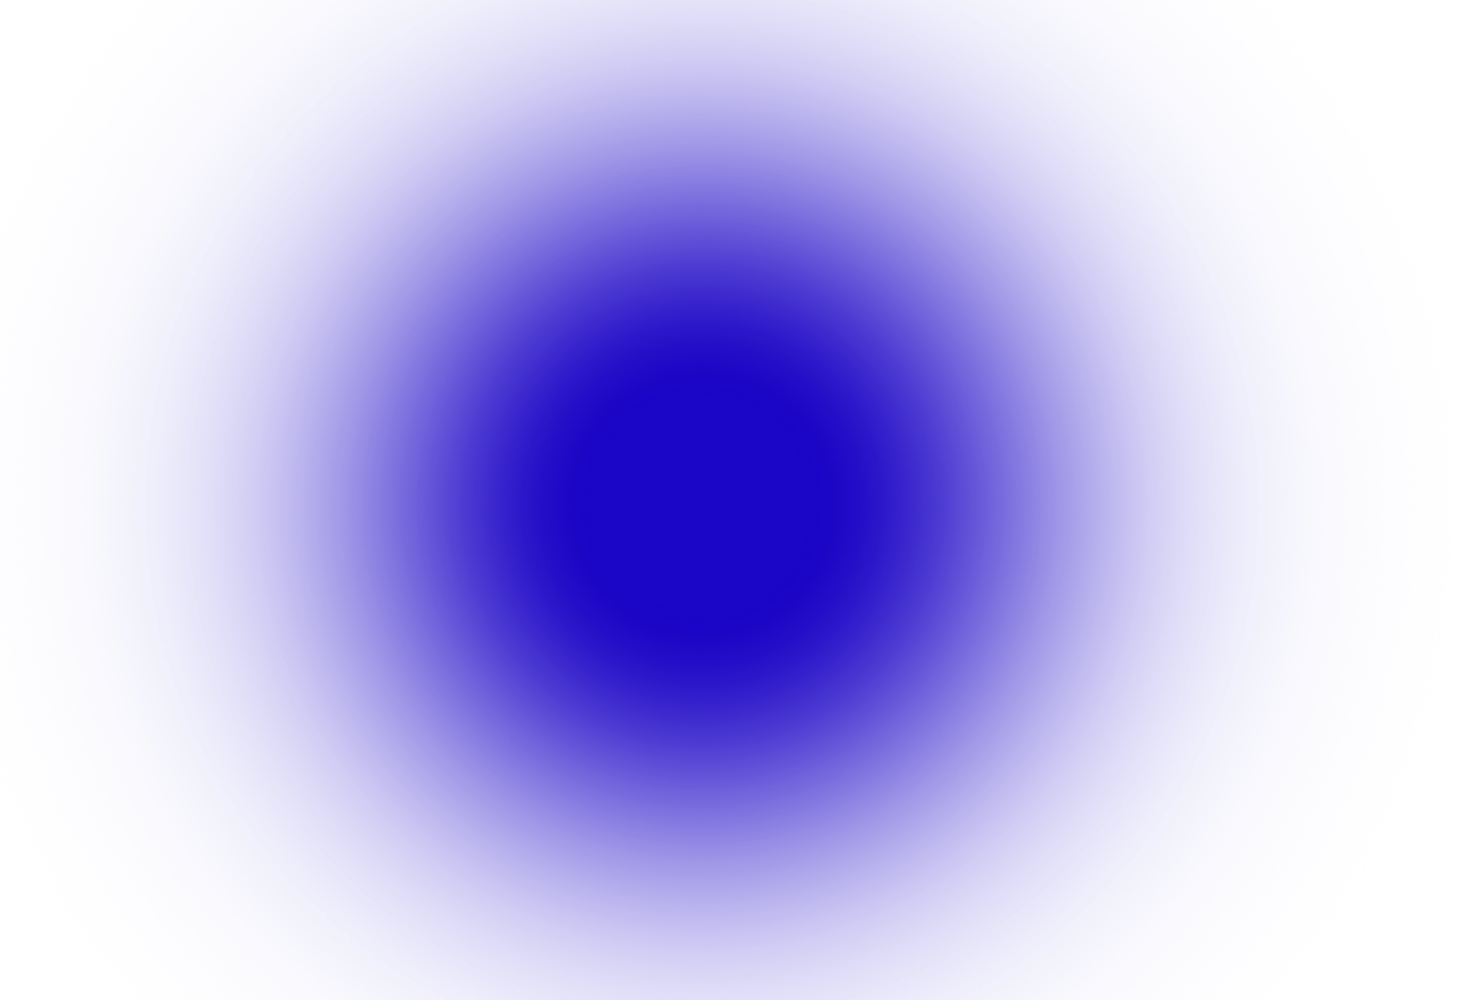 Blue glow png. New all colorful hd